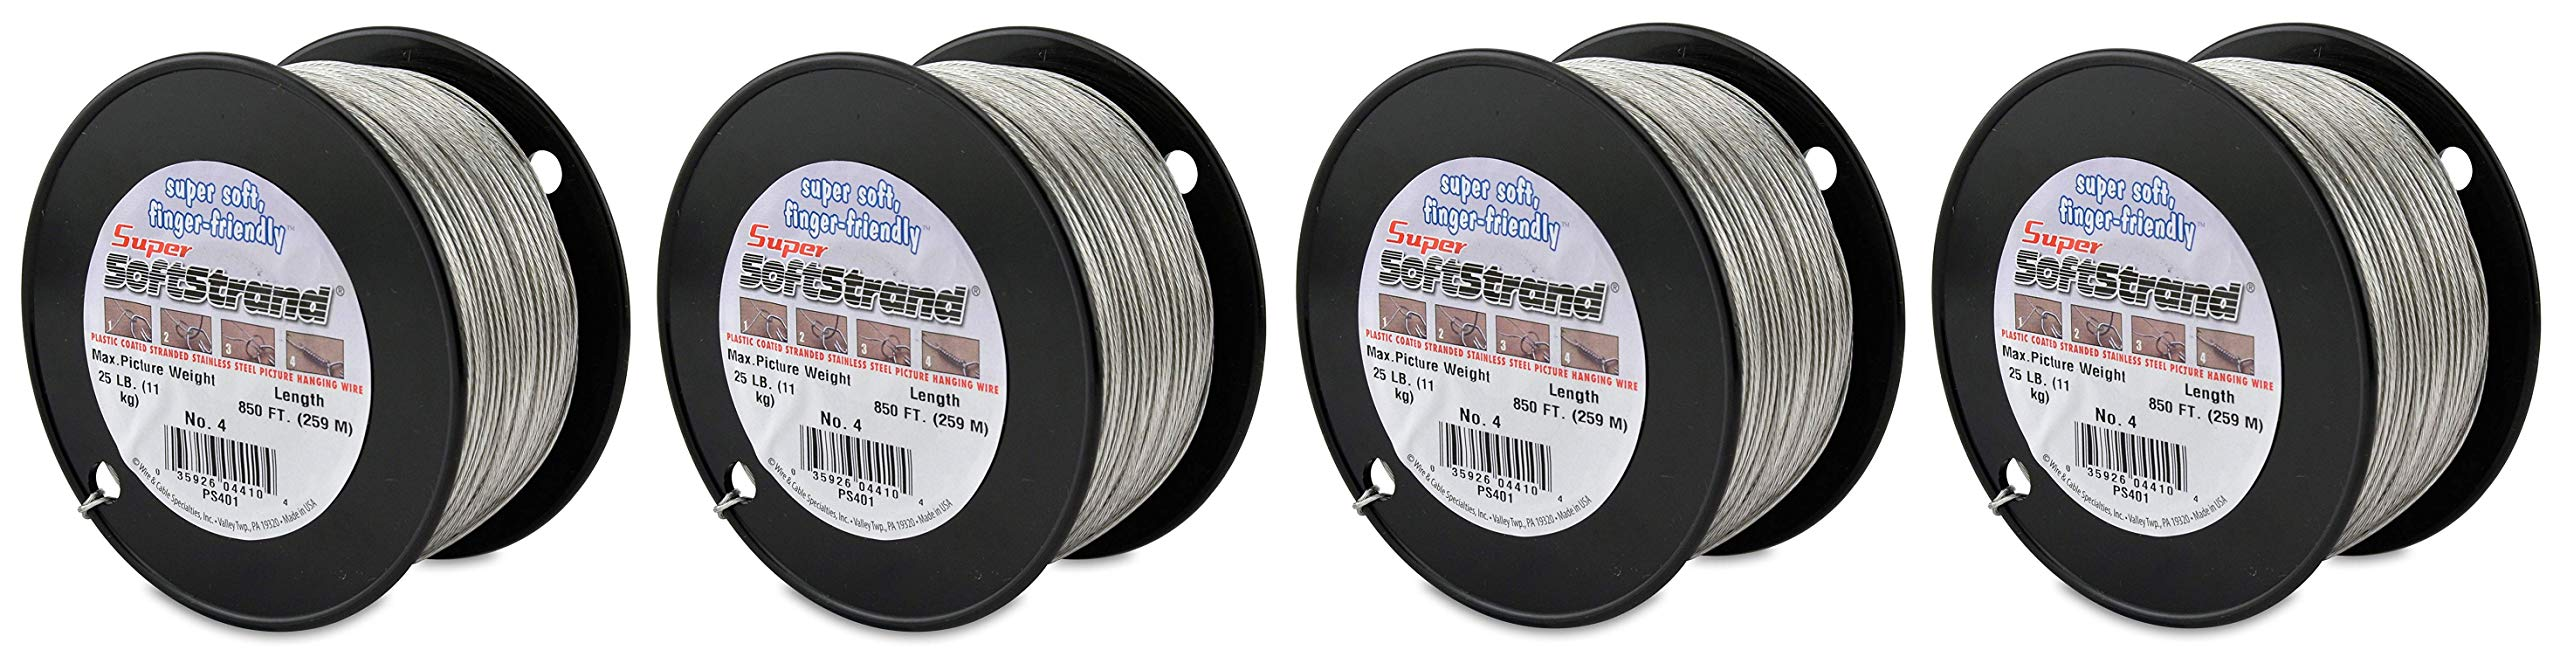 SuperSoftstrand Size 4-850-Feet Picture Wire Vinyl Coated Stranded Stainless Steel (Fоur Paсk)